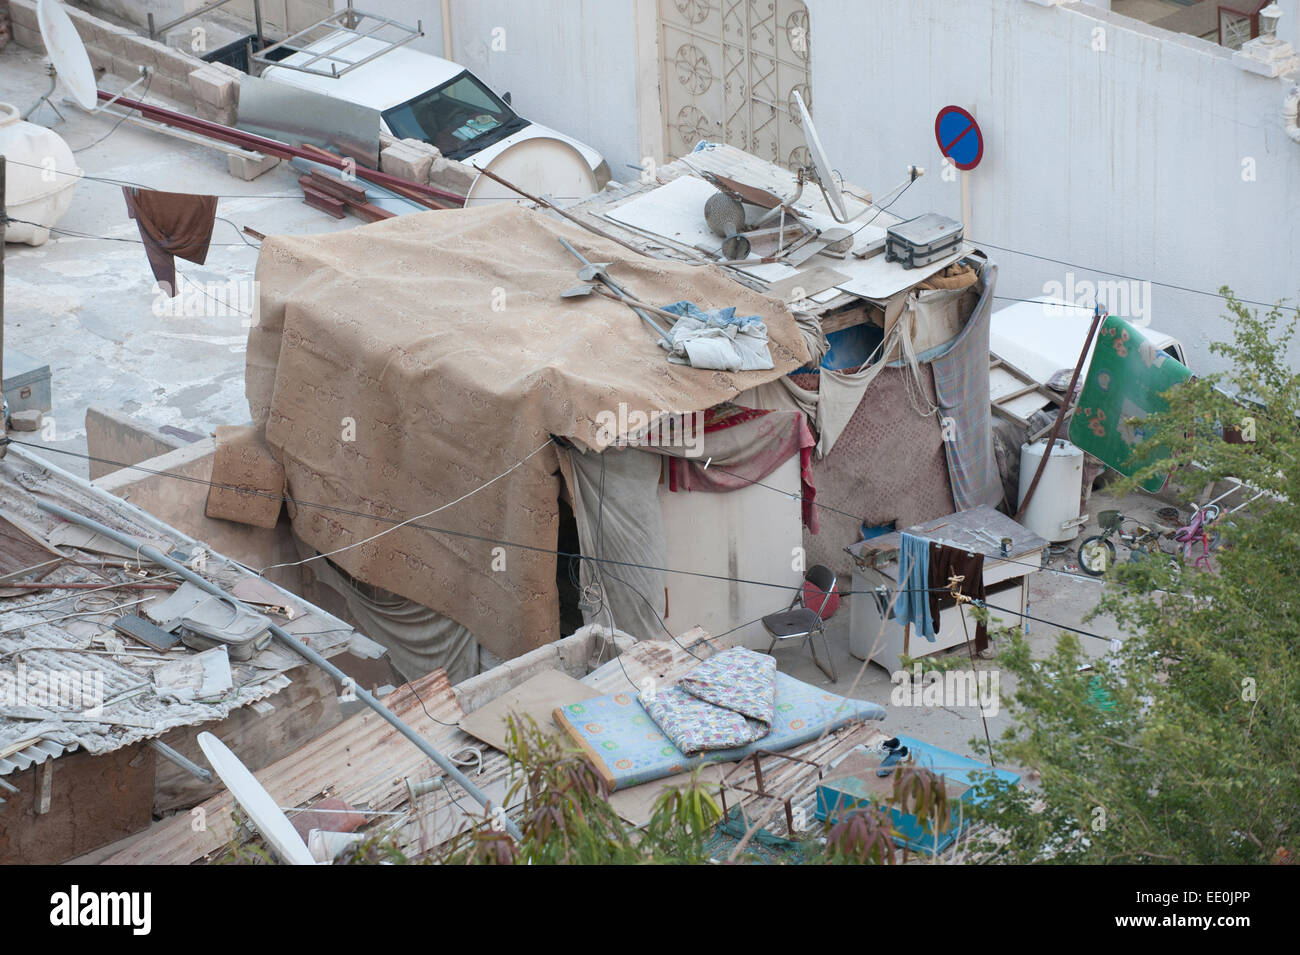 Migrant worker's shack, Old Town Doha, Qatar - Stock Image